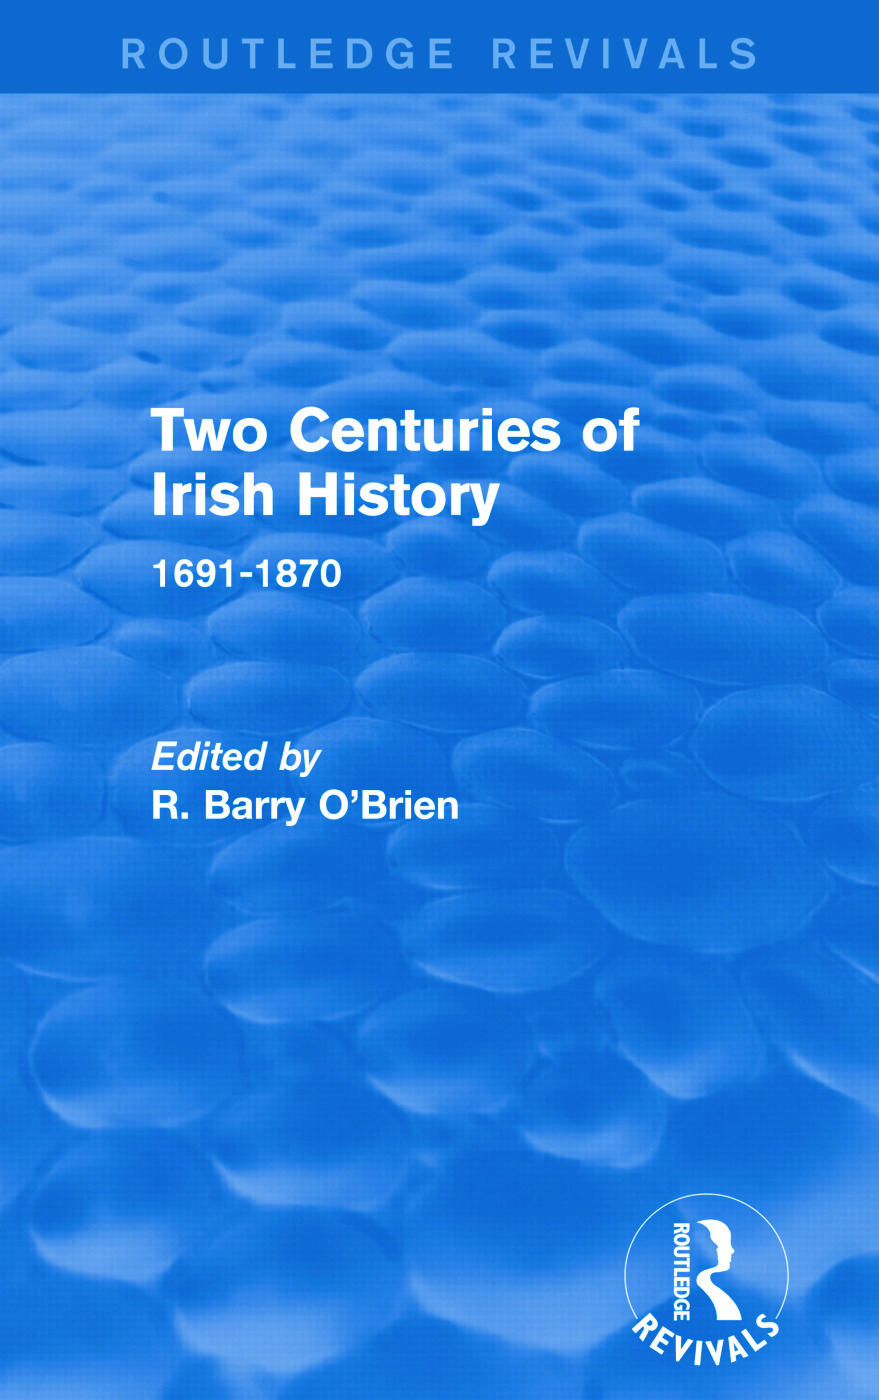 Two Centuries of Irish History (Routledge Revivals): 1691-1870, 1st Edition (Paperback) book cover